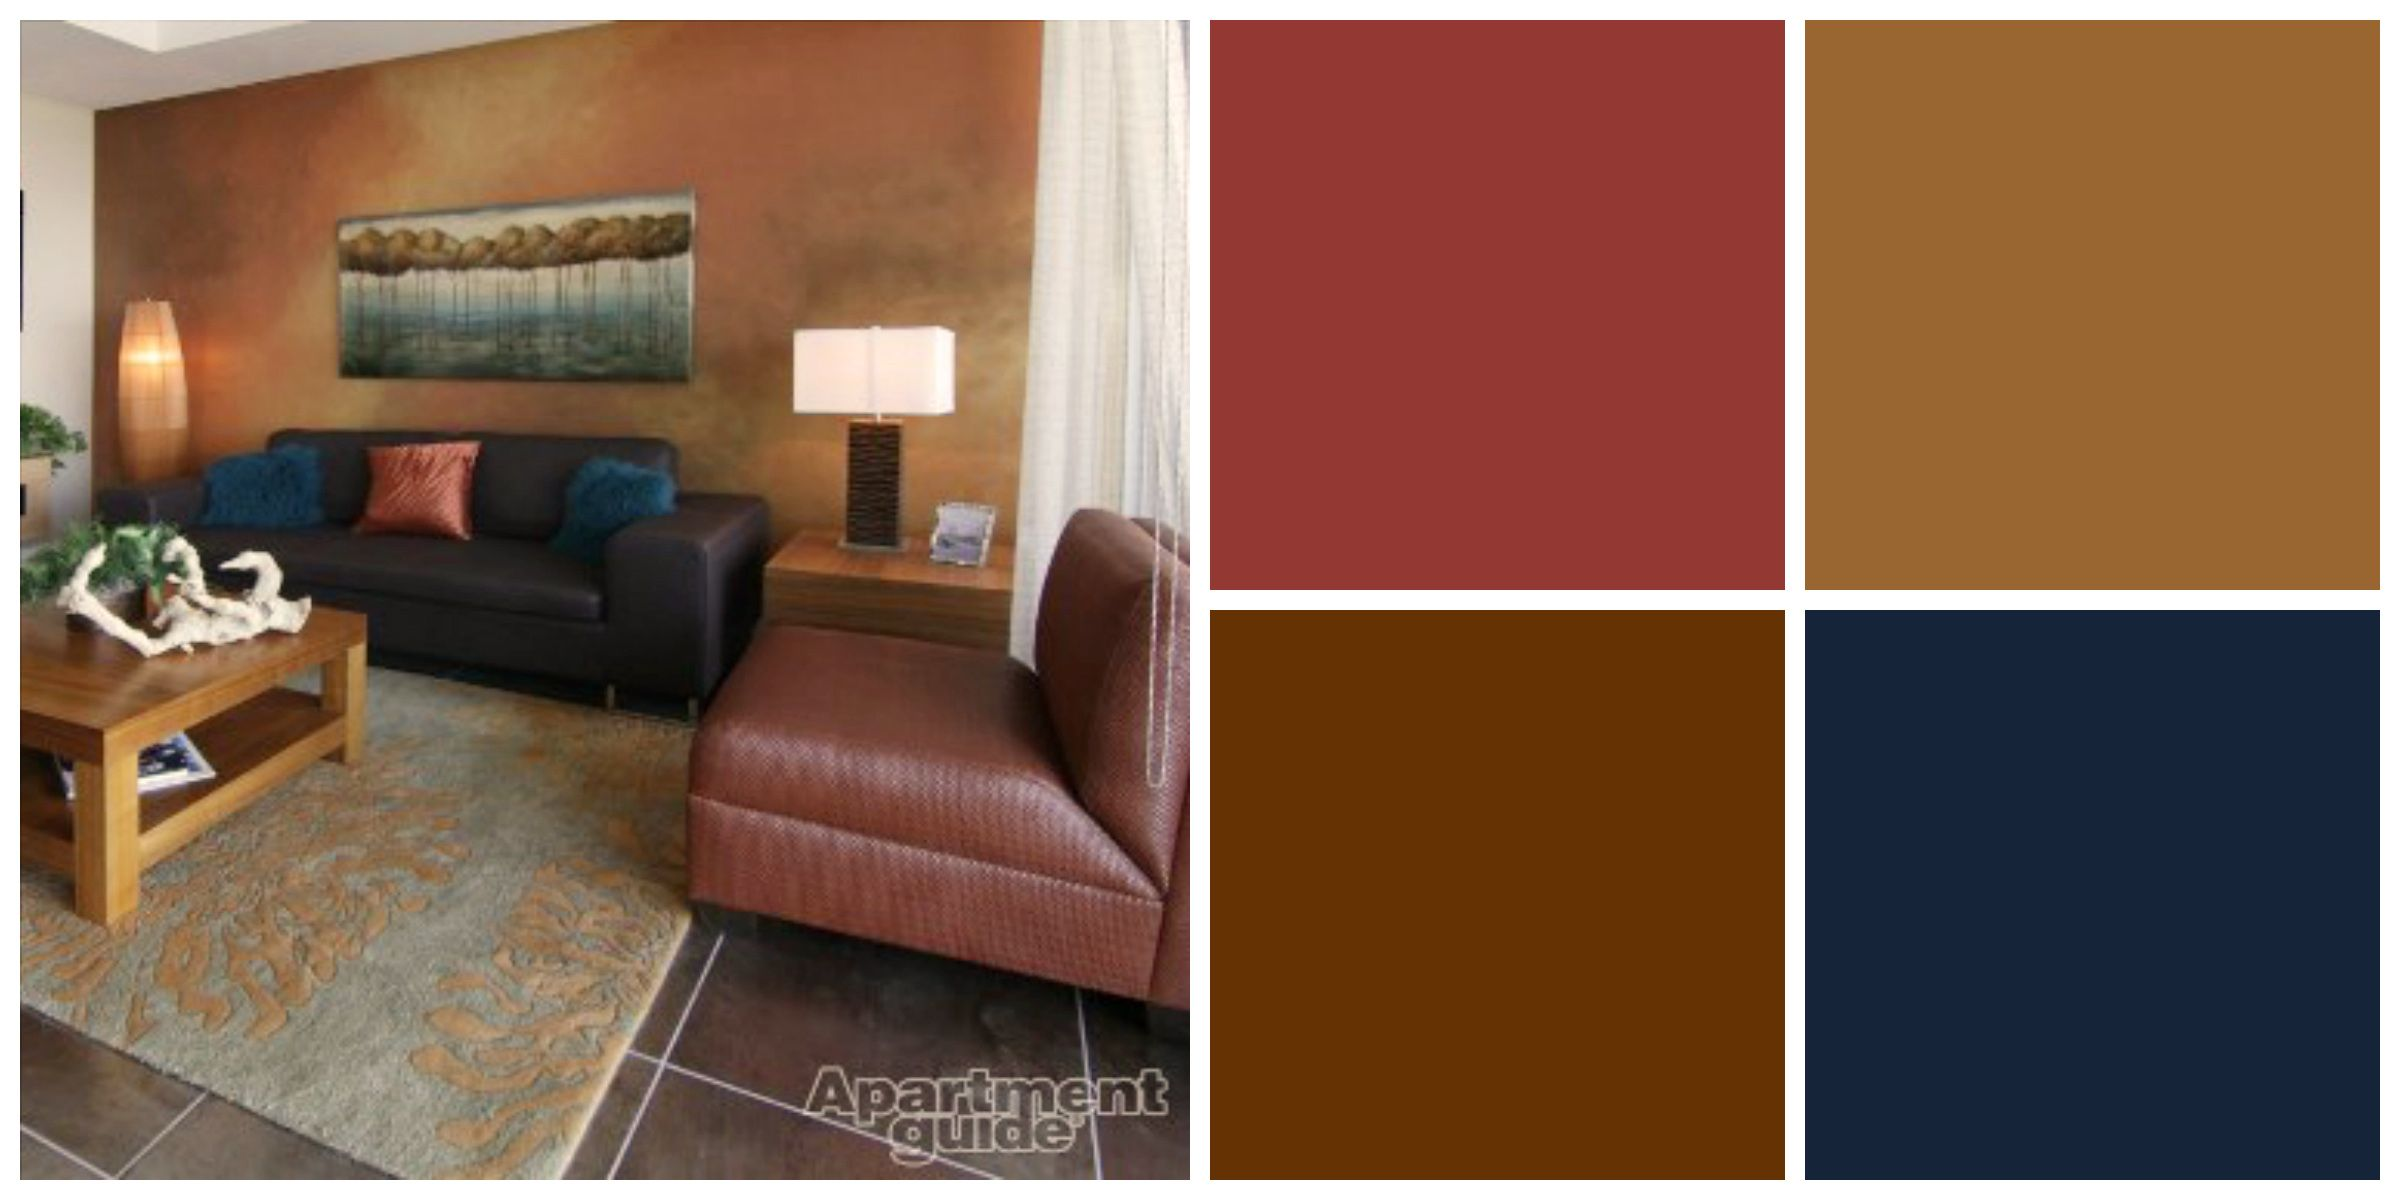 West 6th Apartments Tempe Az 85281 Apartments For Rent Colorful Apartment Living Room Living Room Paint Living Room Colors